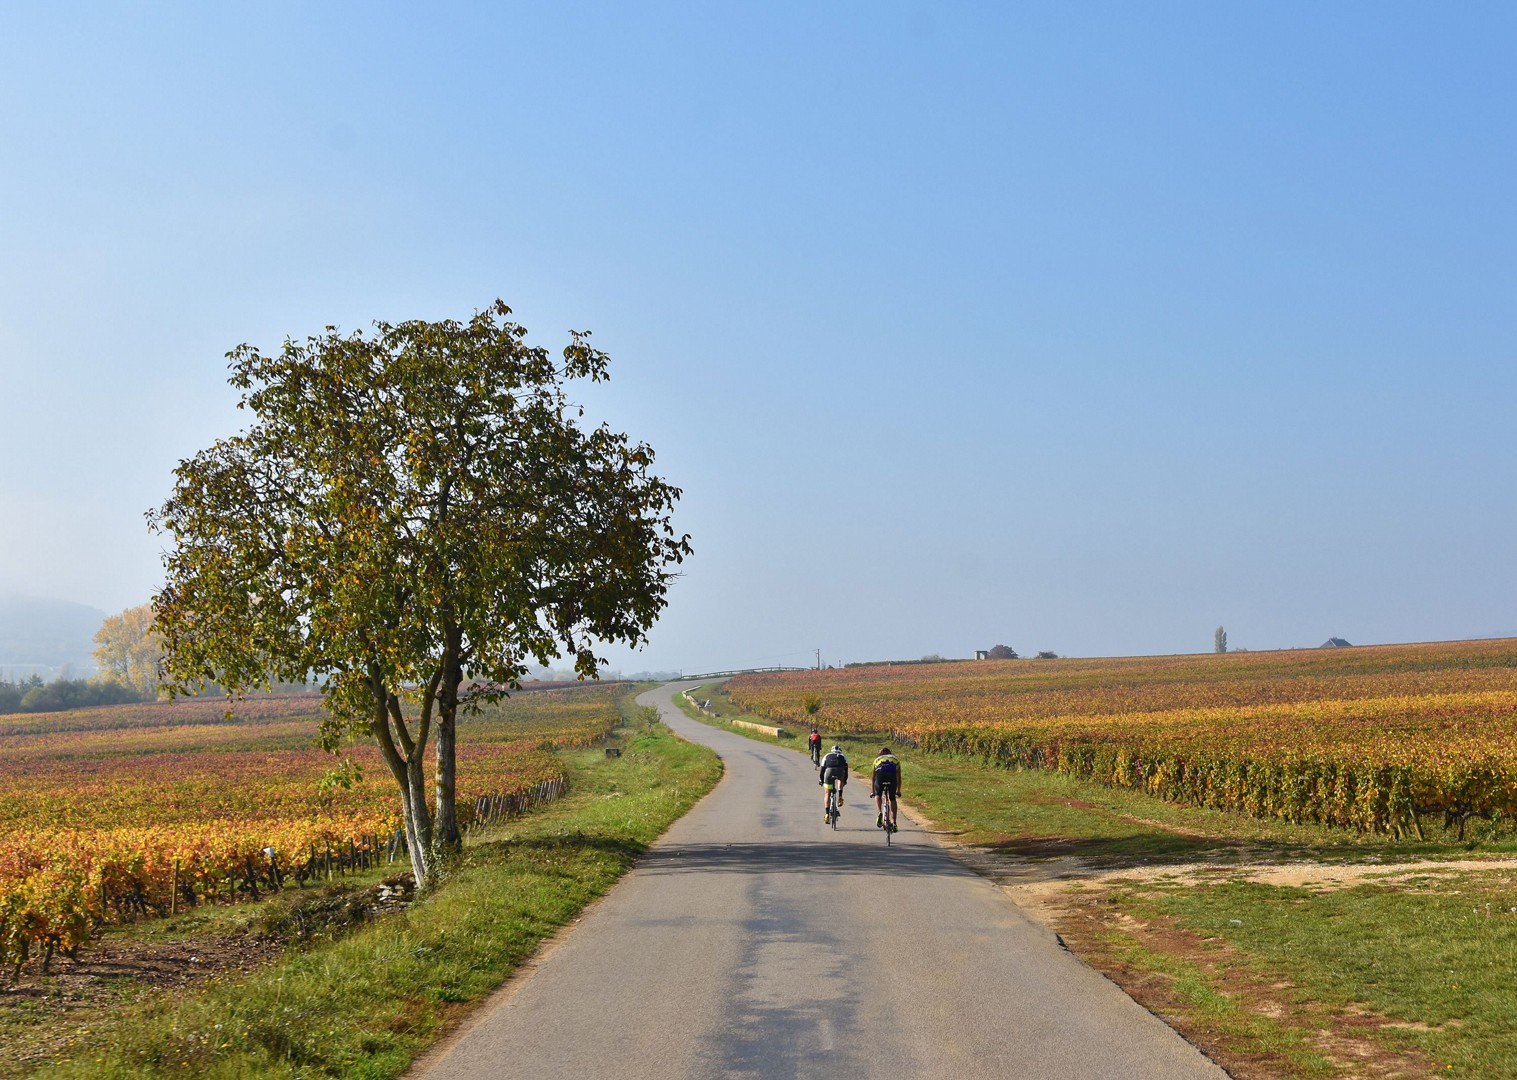 wine-regions-of-france-on-bike-skedaddle.jpg - France - Alsace, Burgundy and Beaujolais - Guided Road Cycling Holiday - Road Cycling